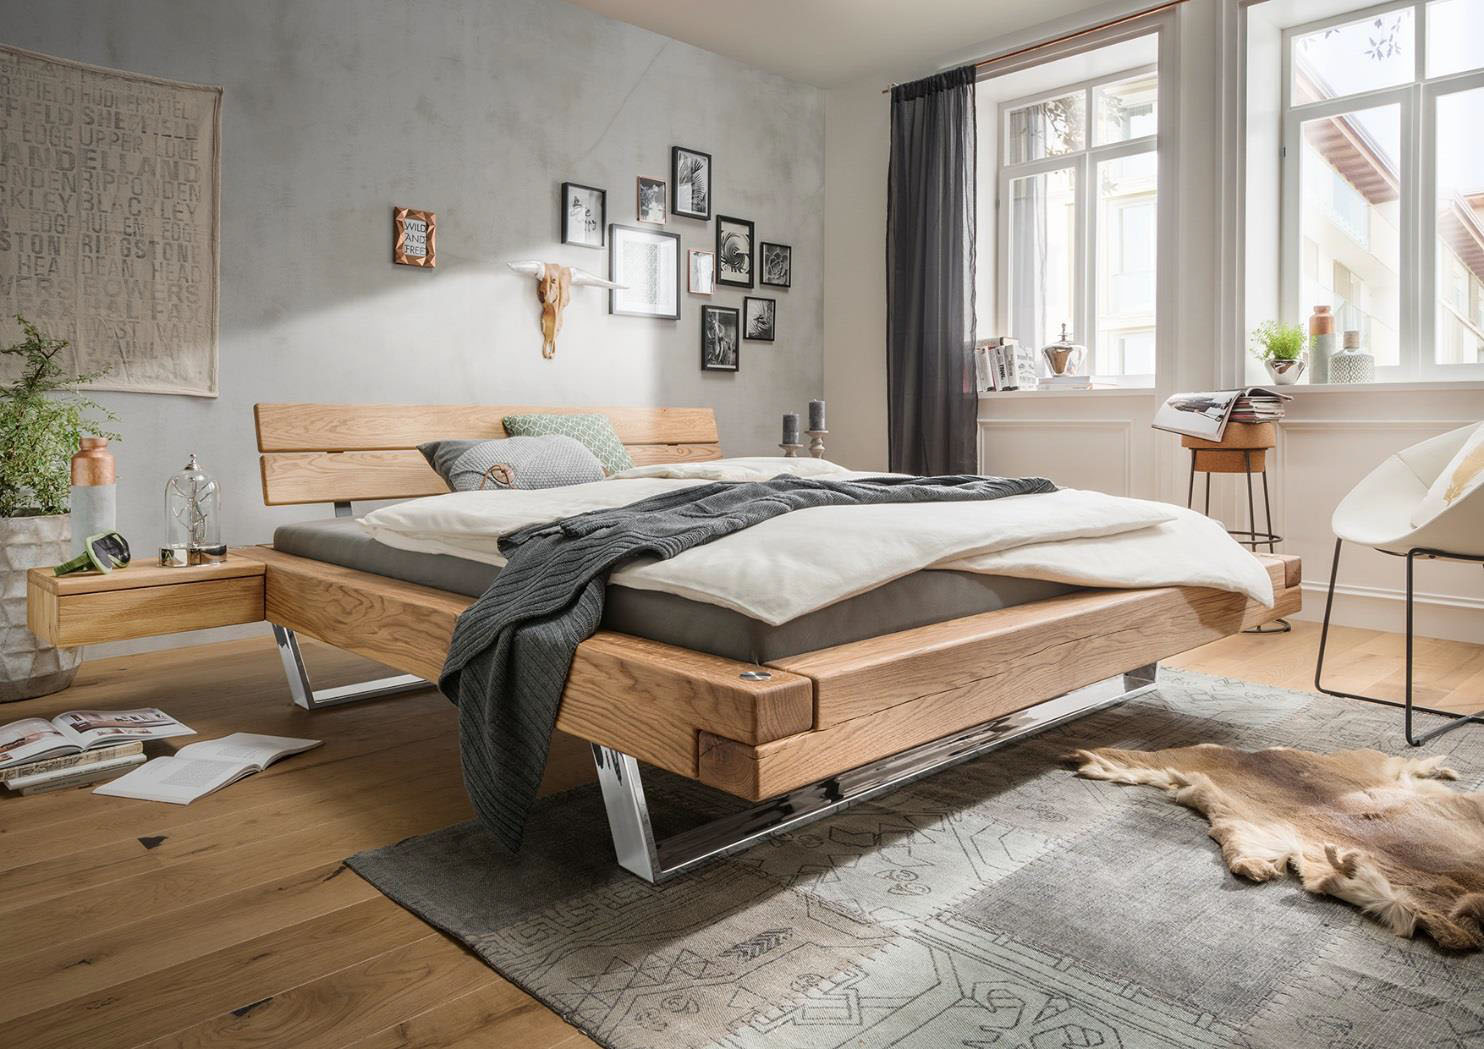 schwebebalkenbett aalborg wildeiche massiv ge lt g nstig. Black Bedroom Furniture Sets. Home Design Ideas